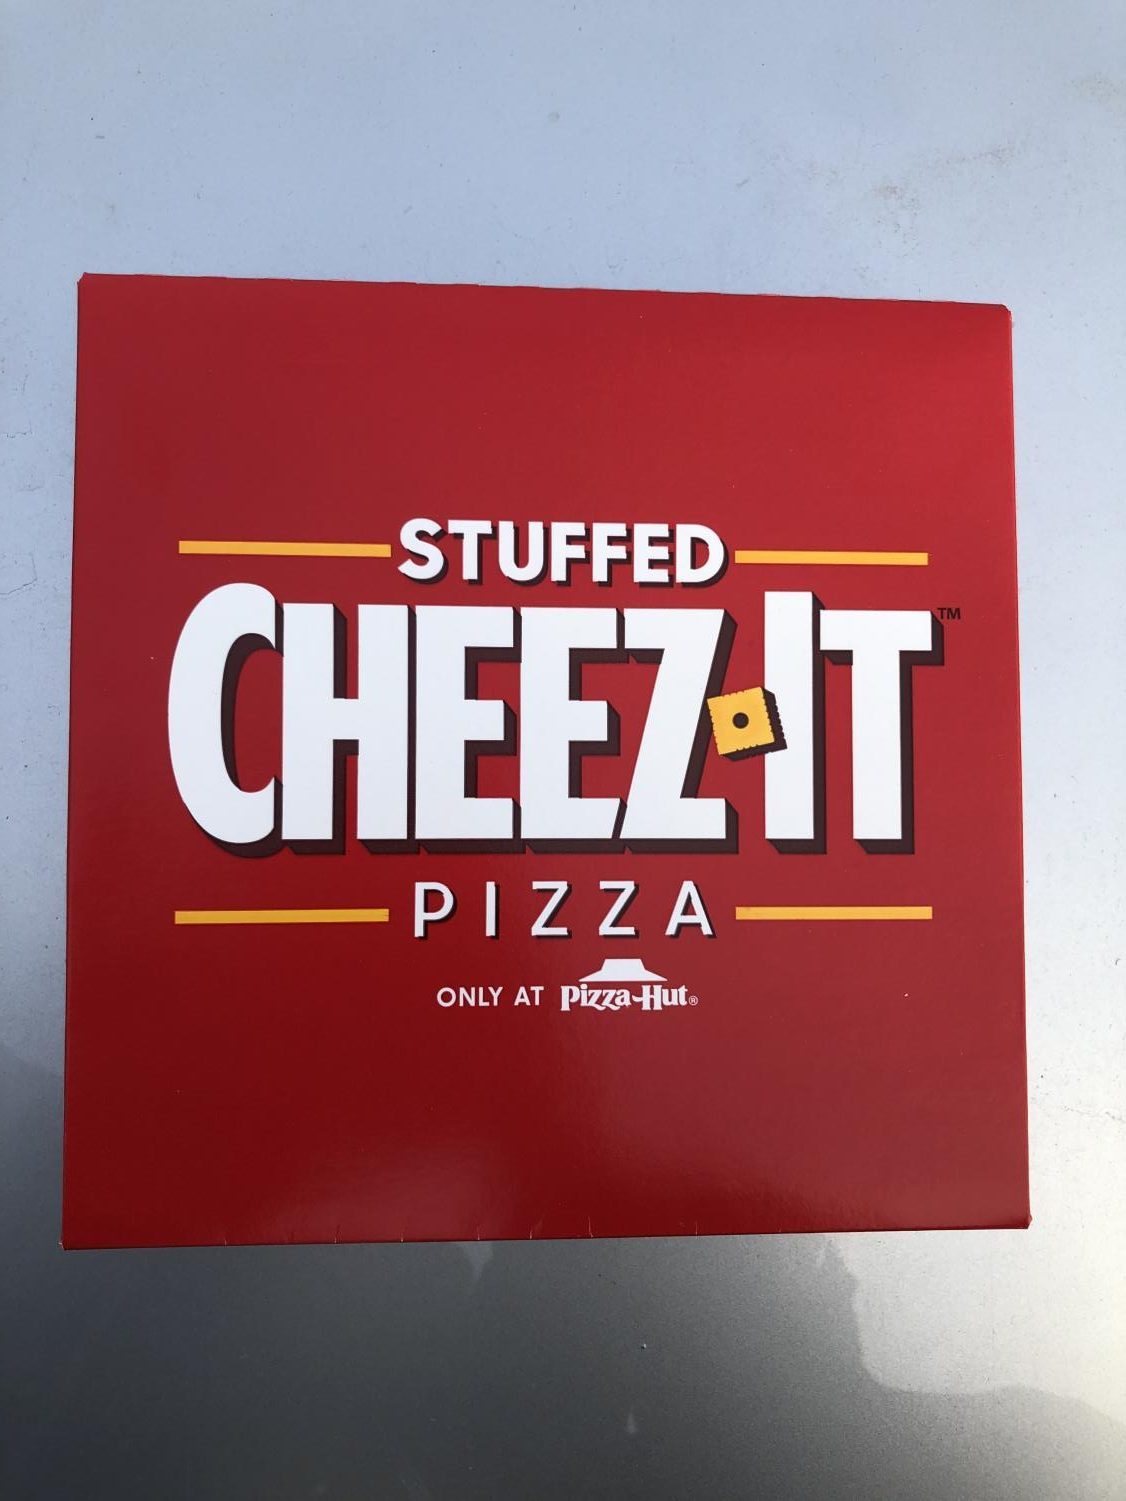 The Cheez-It Pizza comes in either pepperoni or cheese with a side of marinara sauce.